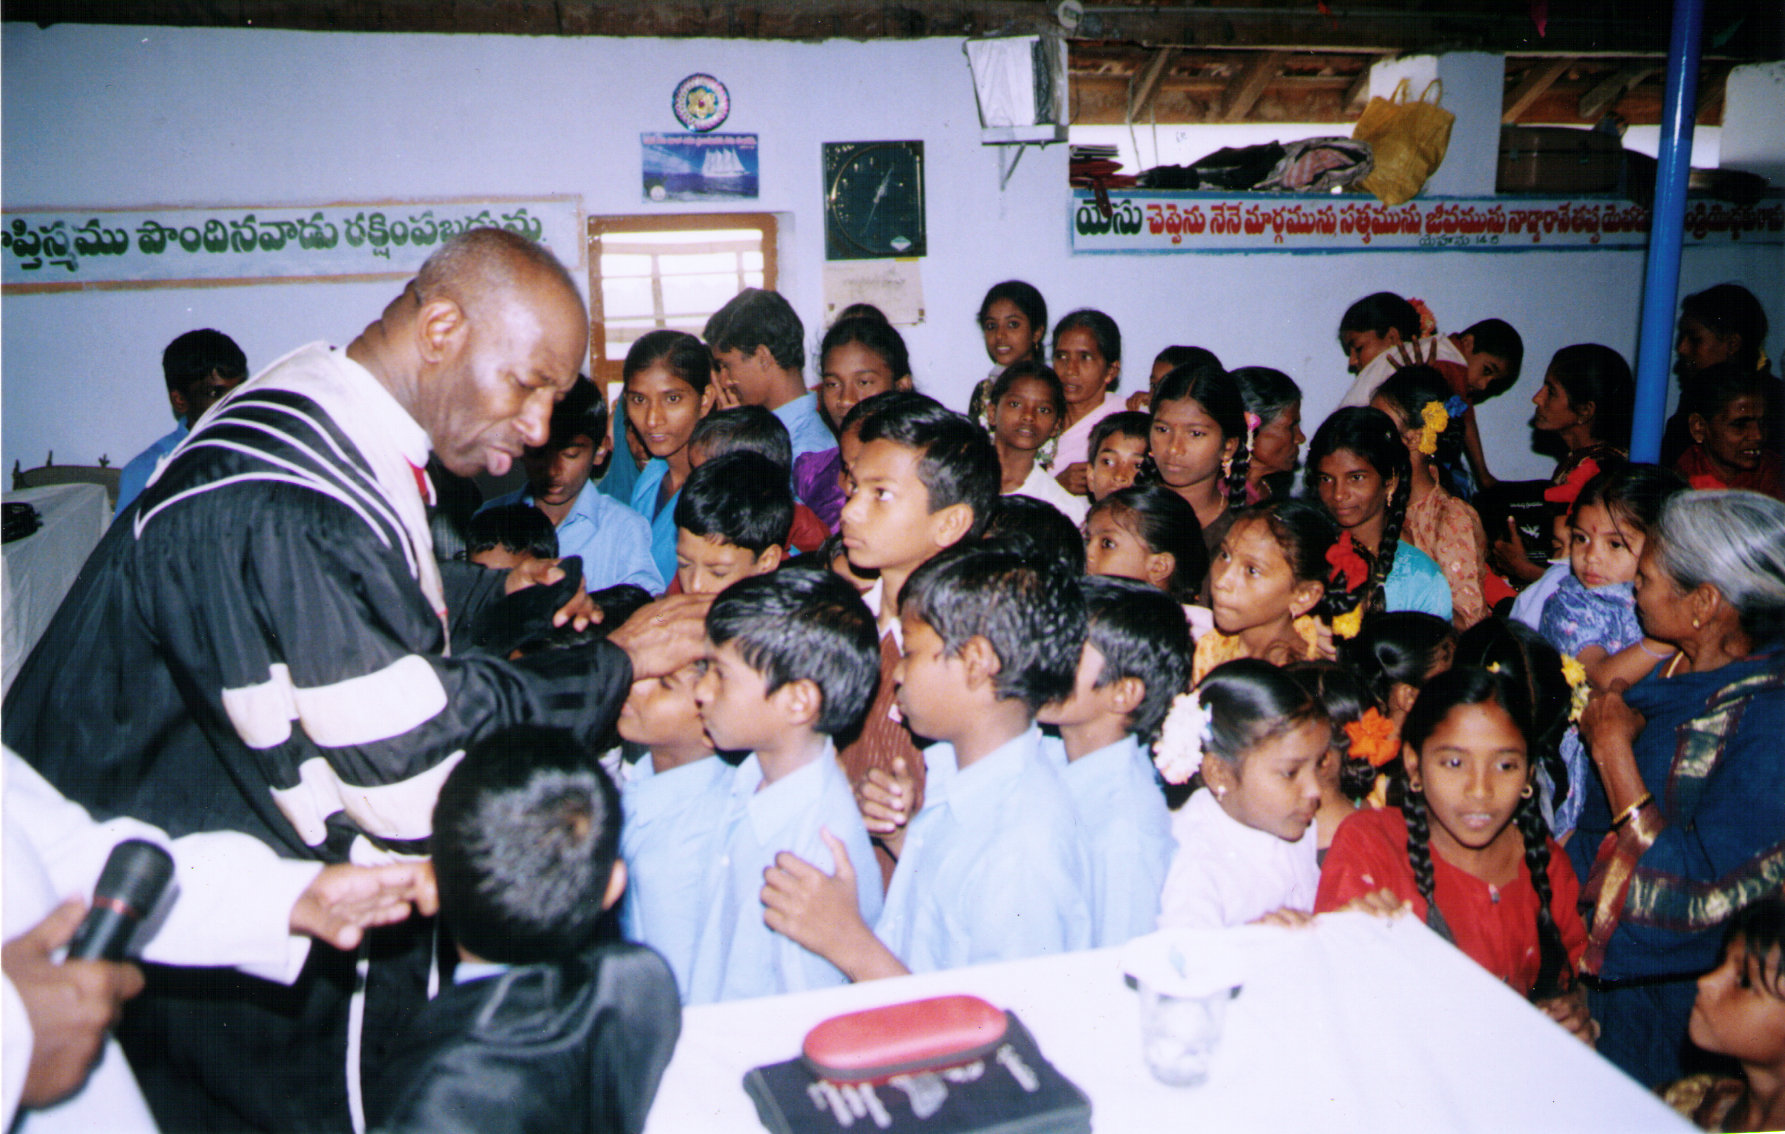 Apostle McFarlane Praying for The Children of BOTR Pakistan